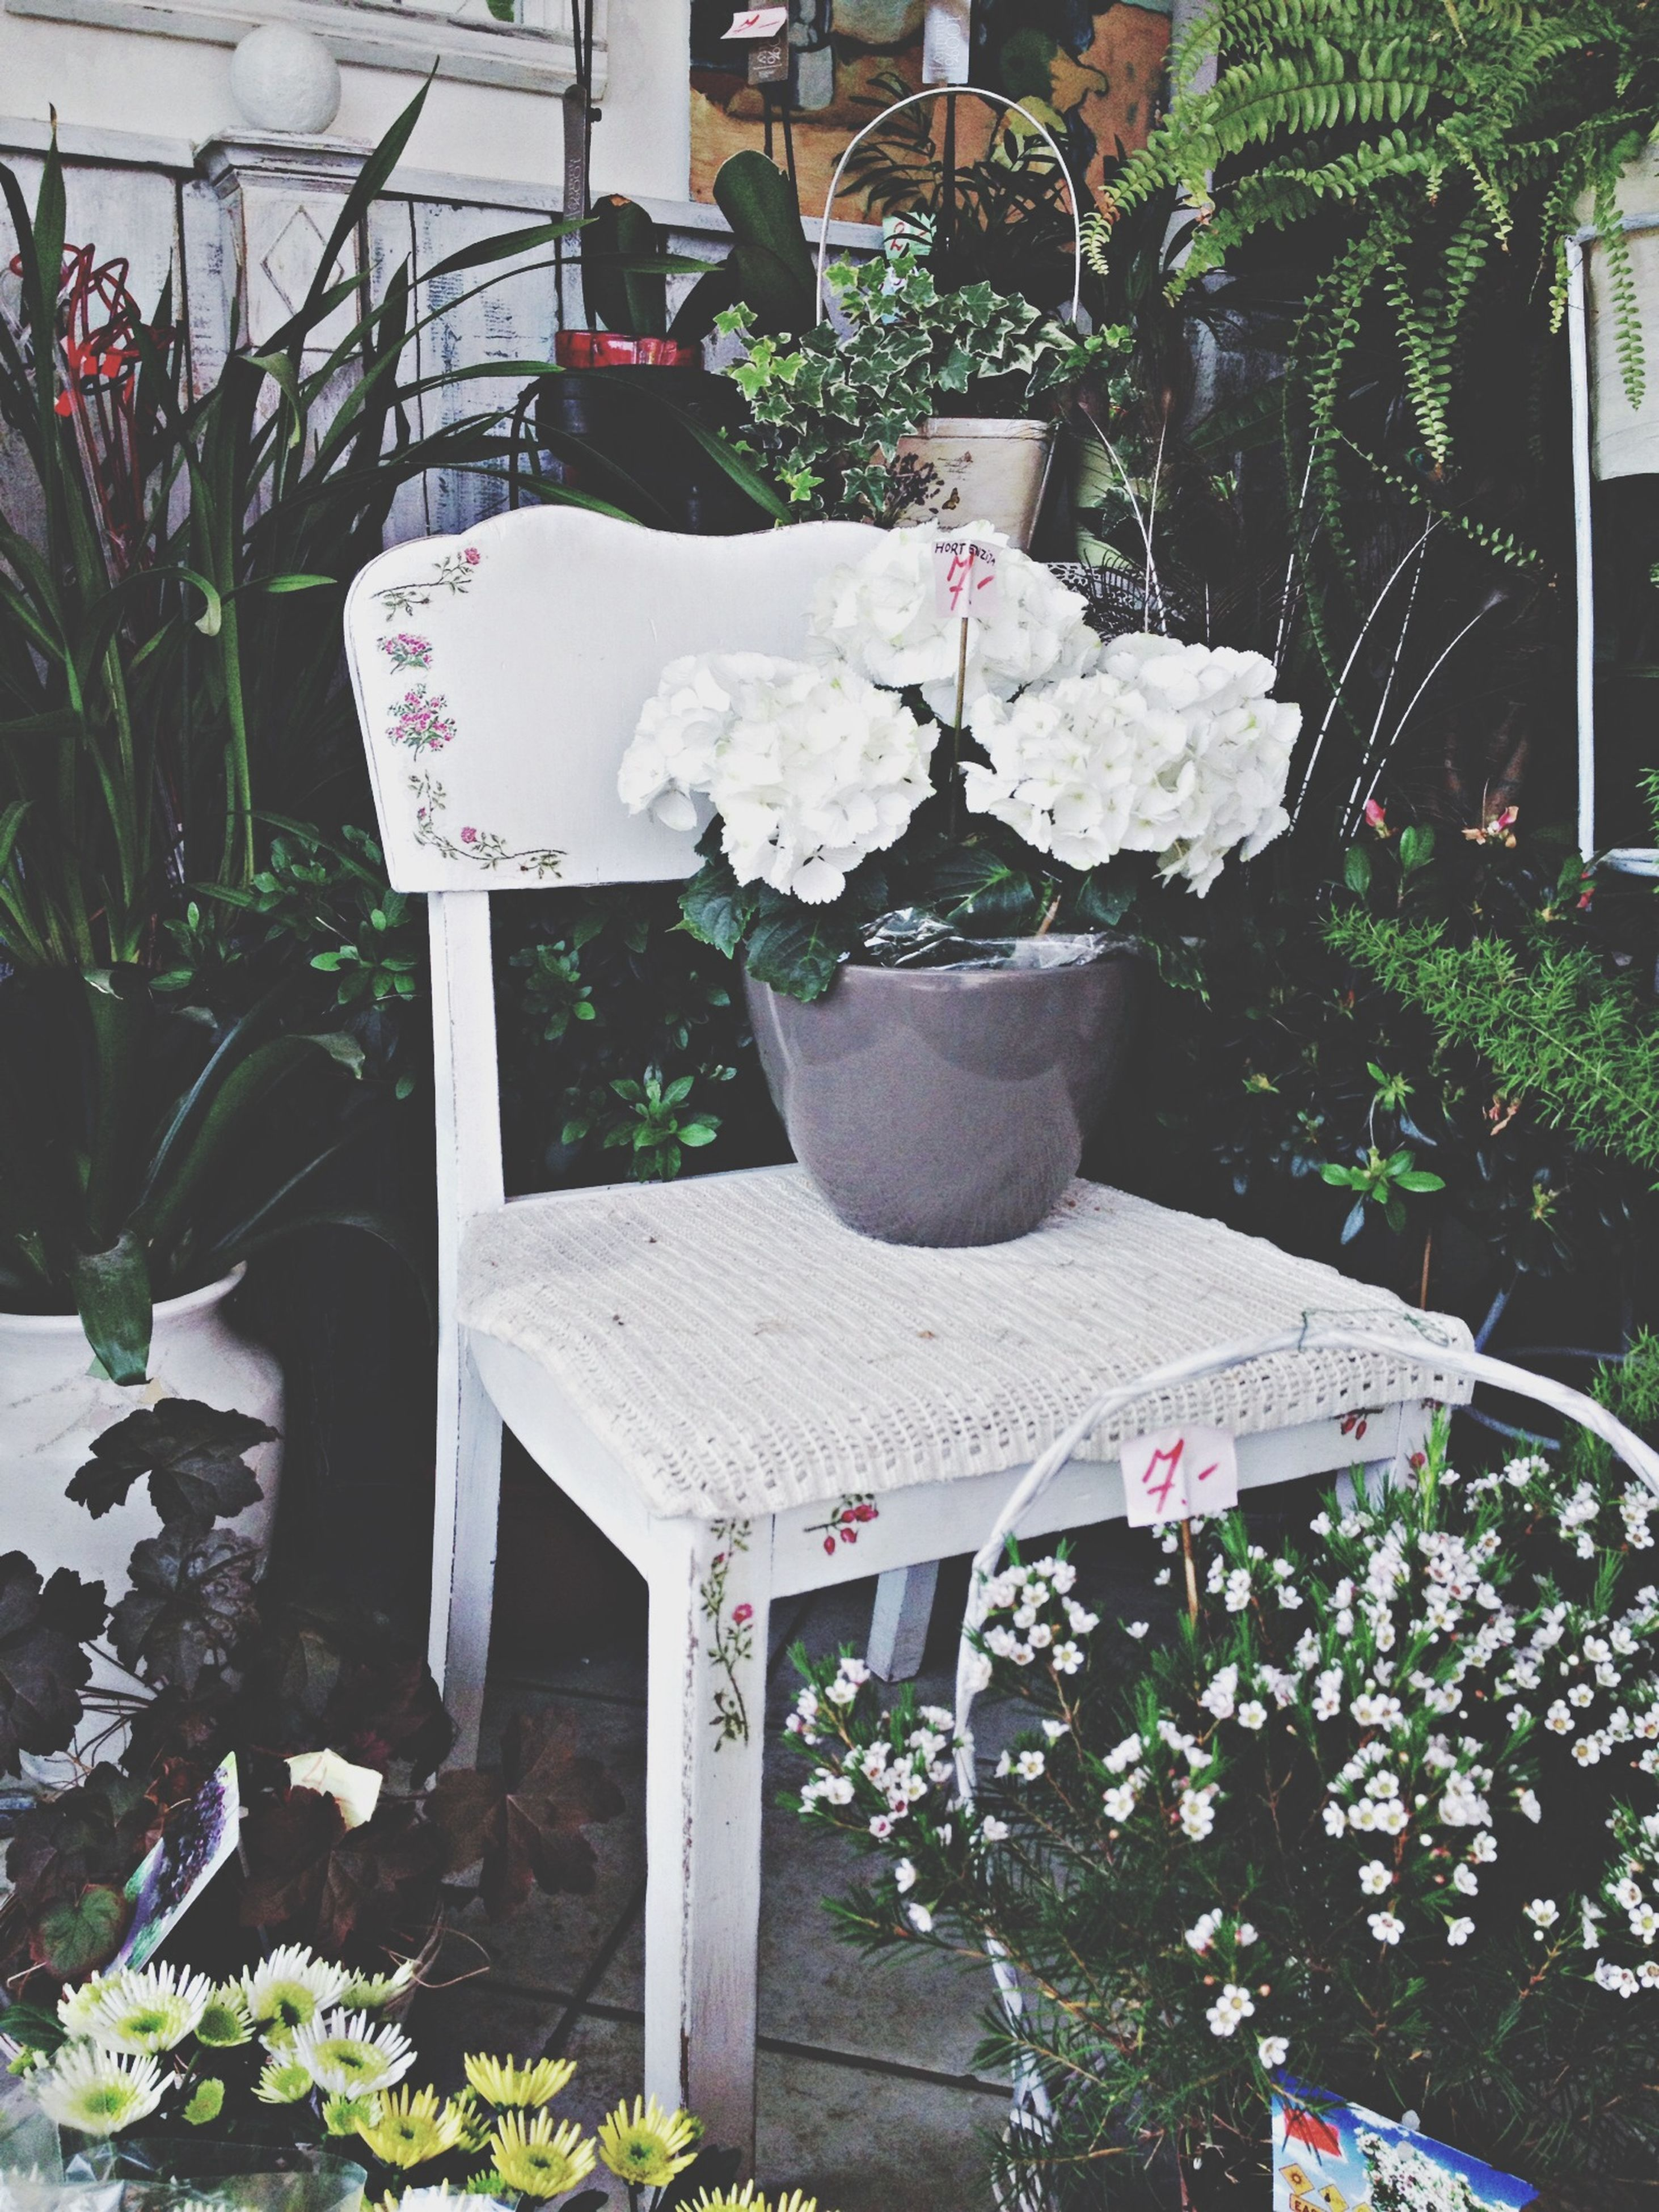 plant, potted plant, flower, growth, chair, house, front or back yard, leaf, flower pot, built structure, architecture, freshness, building exterior, table, nature, day, window, no people, outdoors, tree